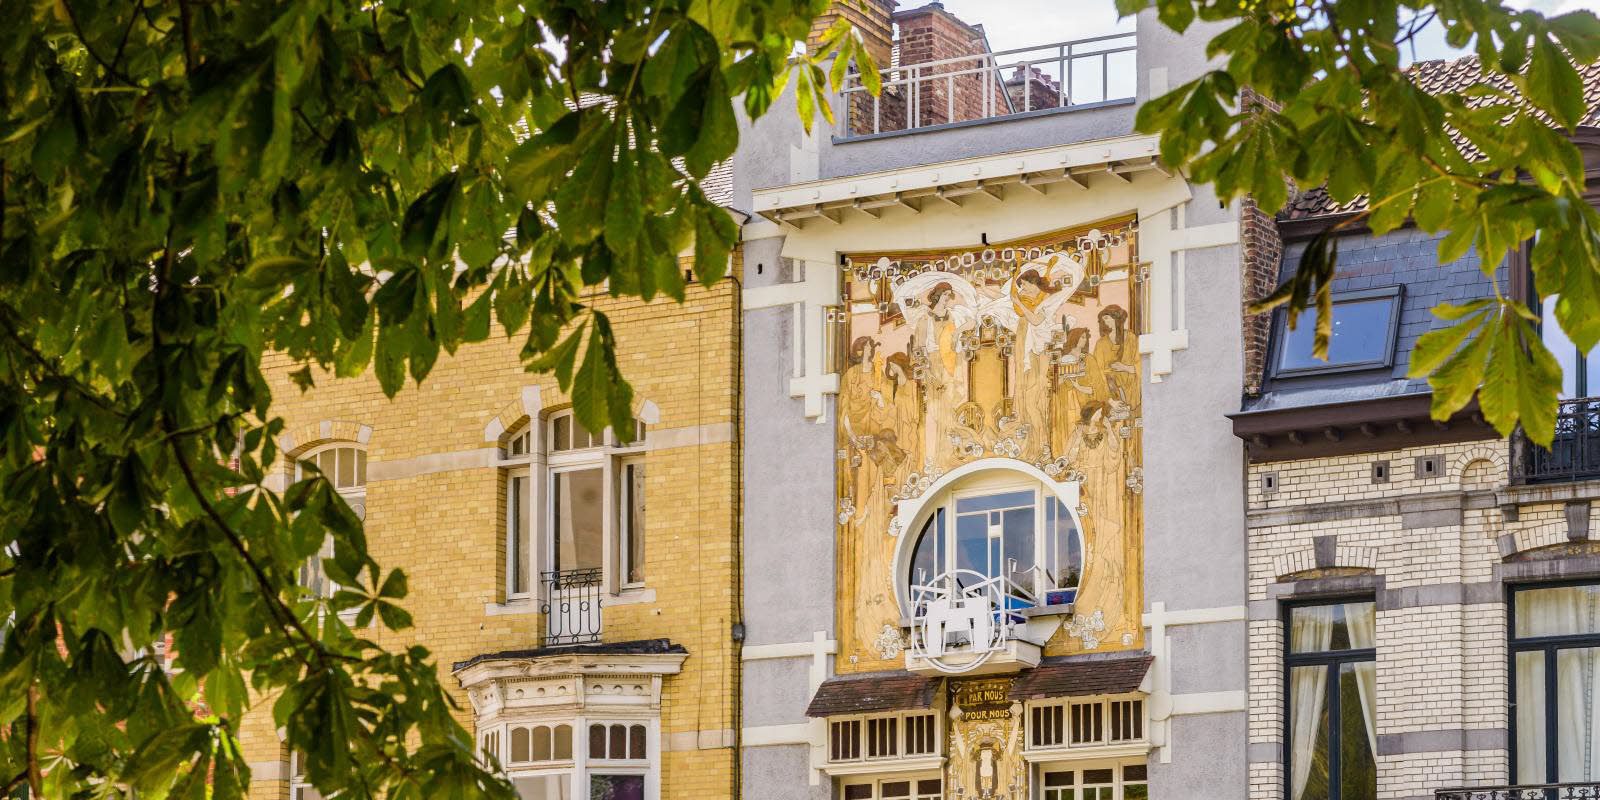 Buildning in Brussels with Art Nouveau style